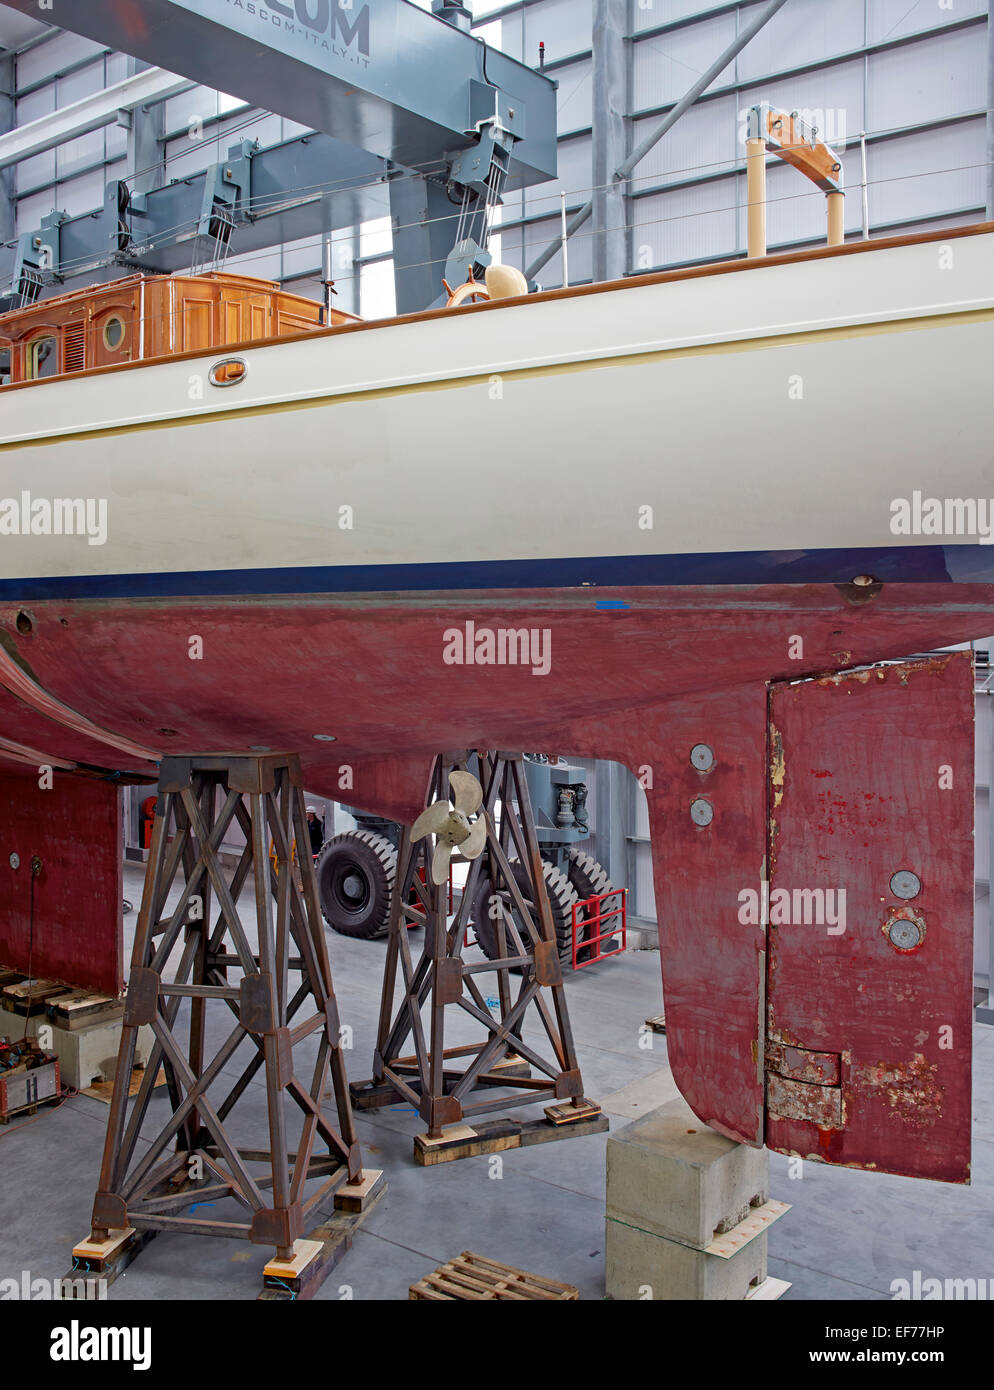 Pendennis Shipyard, Falmouth TR11 4NR, United Kingdom. Architect: na, 2014. Side elevation of yacht in dry dock. Stock Photo